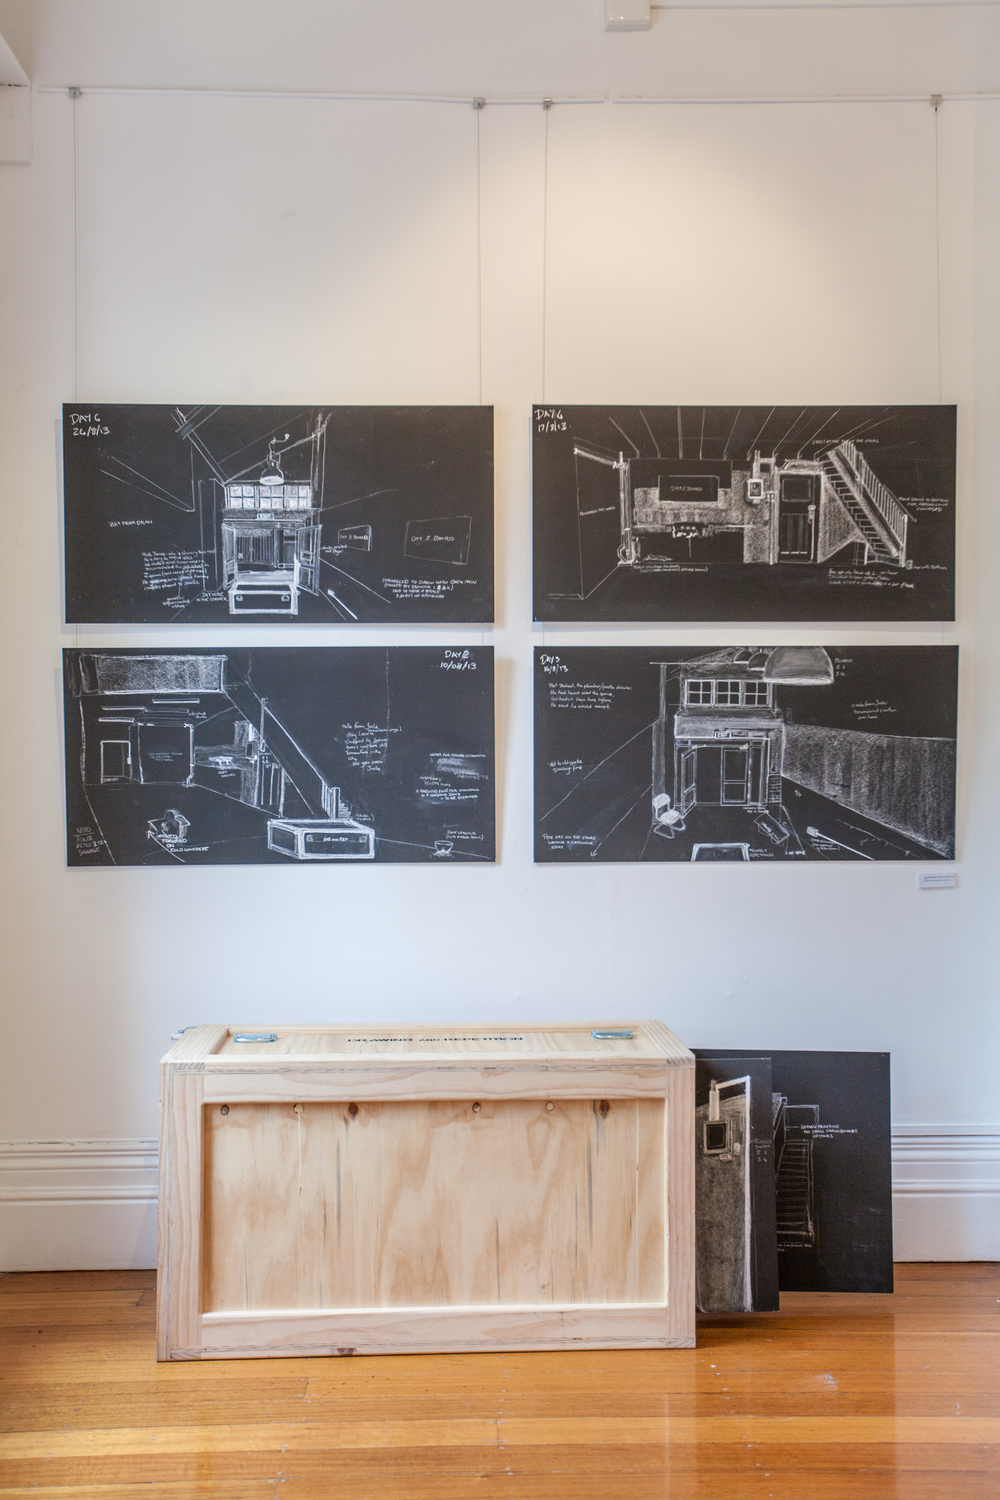 Laura Hindmarsh - Repetitive Drawing Project, 2013, series of 6 chalk drawings, wooden crate